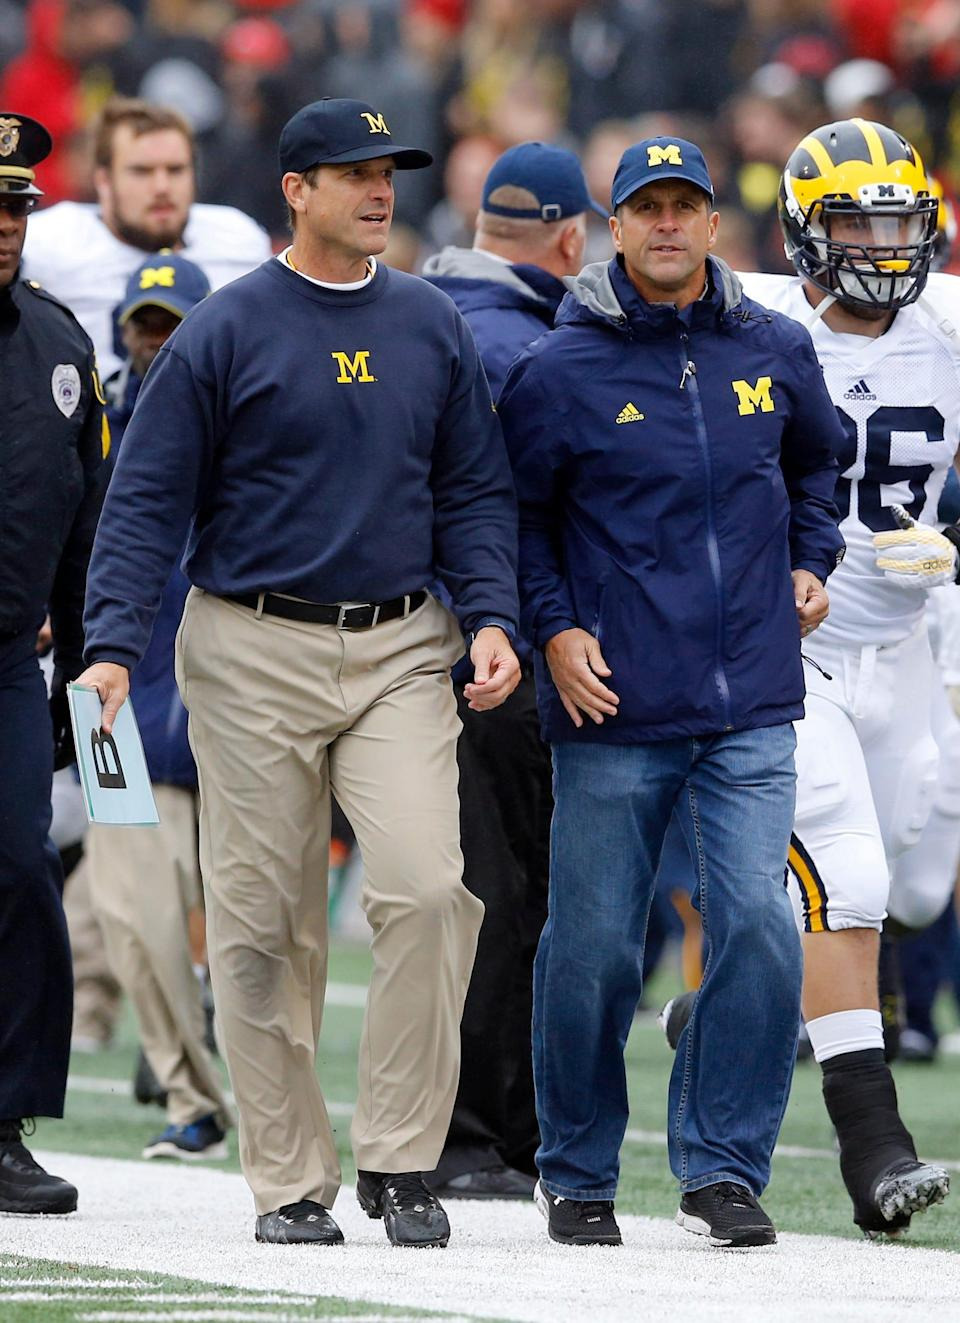 Michigan coach Jim Harbaugh, left, walks off the field with his brother, Ravens coach John Harbaugh, at the end of the first half of U-M's win at Maryland on Oct. 3.